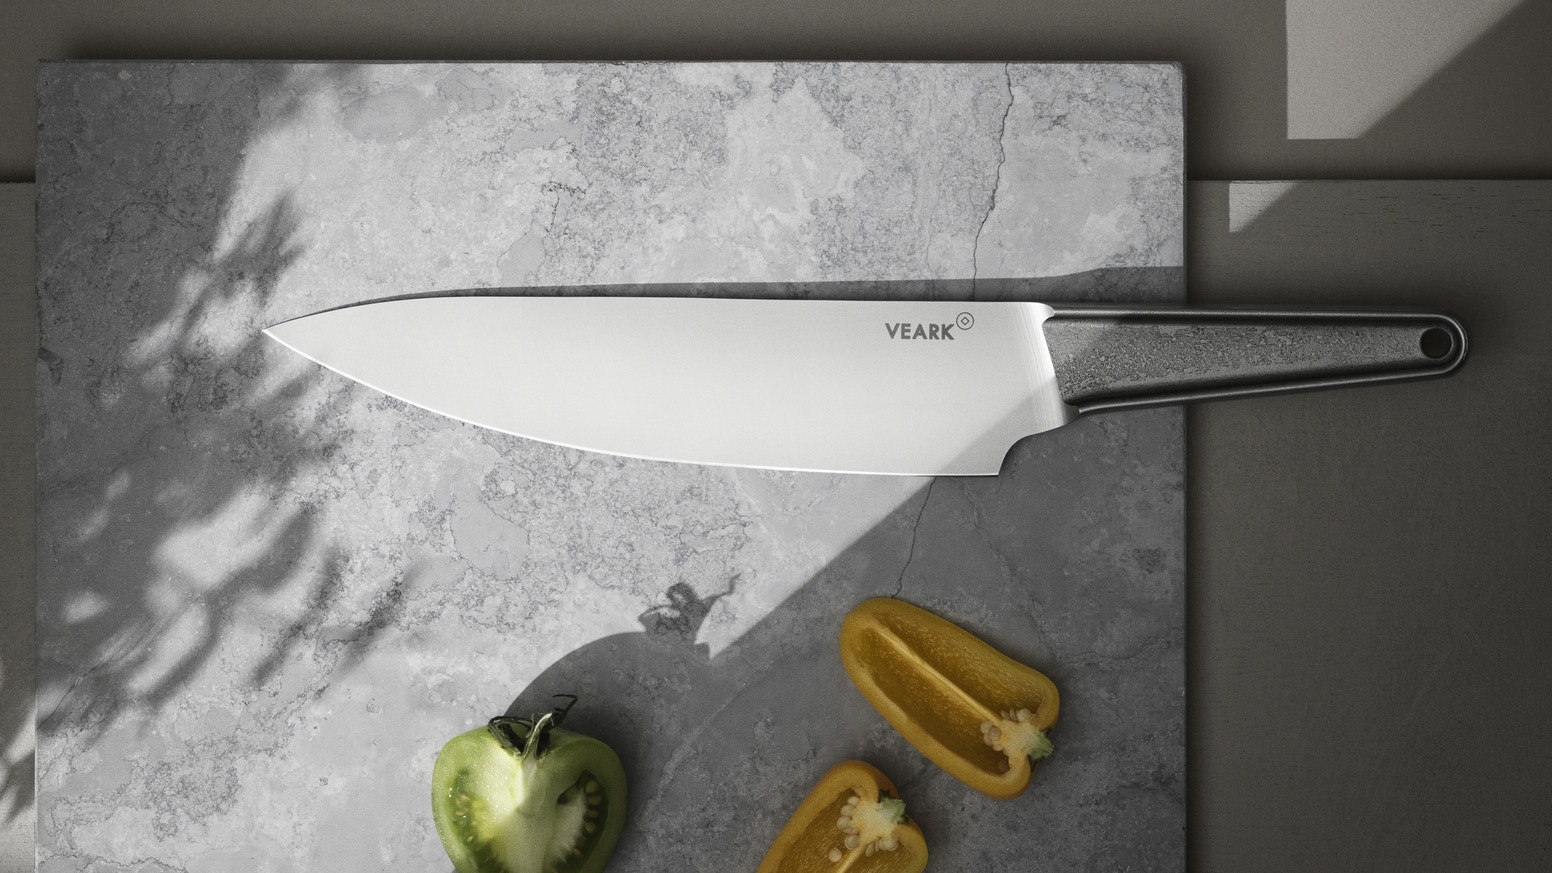 Designed to be your one piece kitchen tool. 20cm stainless steel blade in classic chef's knife shape. Made in Solingen, Germany.